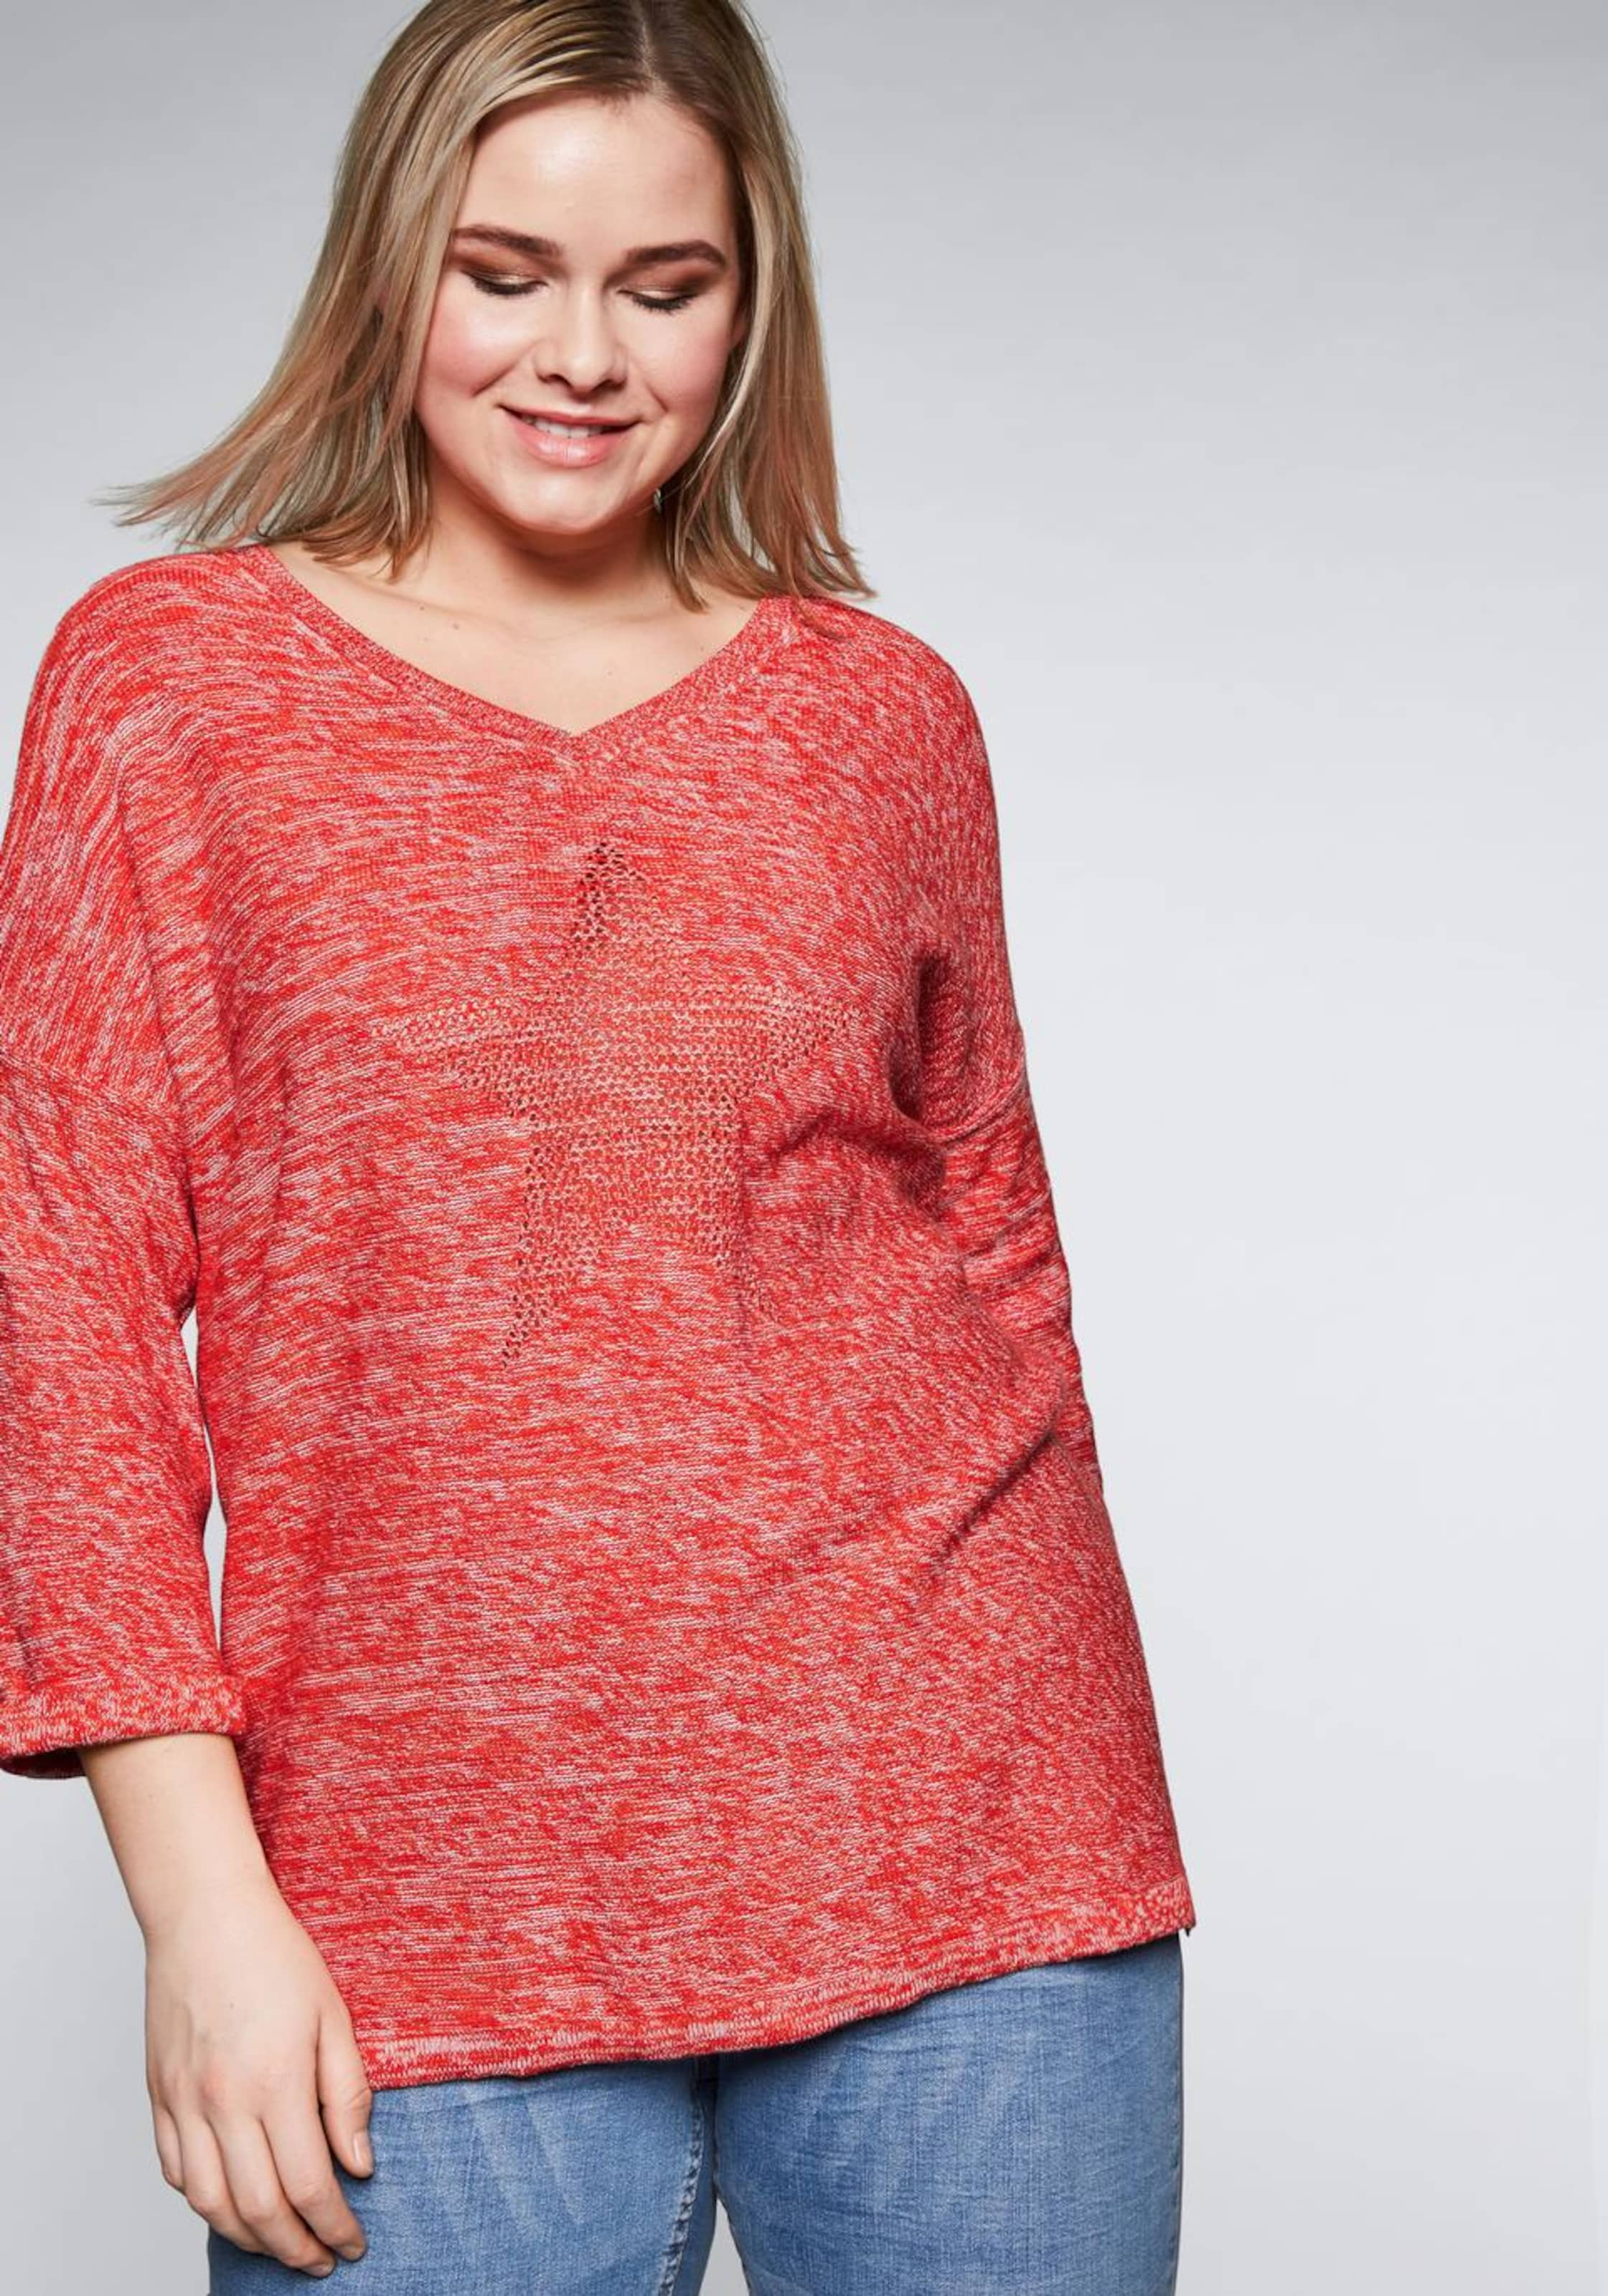 Sheego Sheego In Rot Pullover In Pullover 534LARj